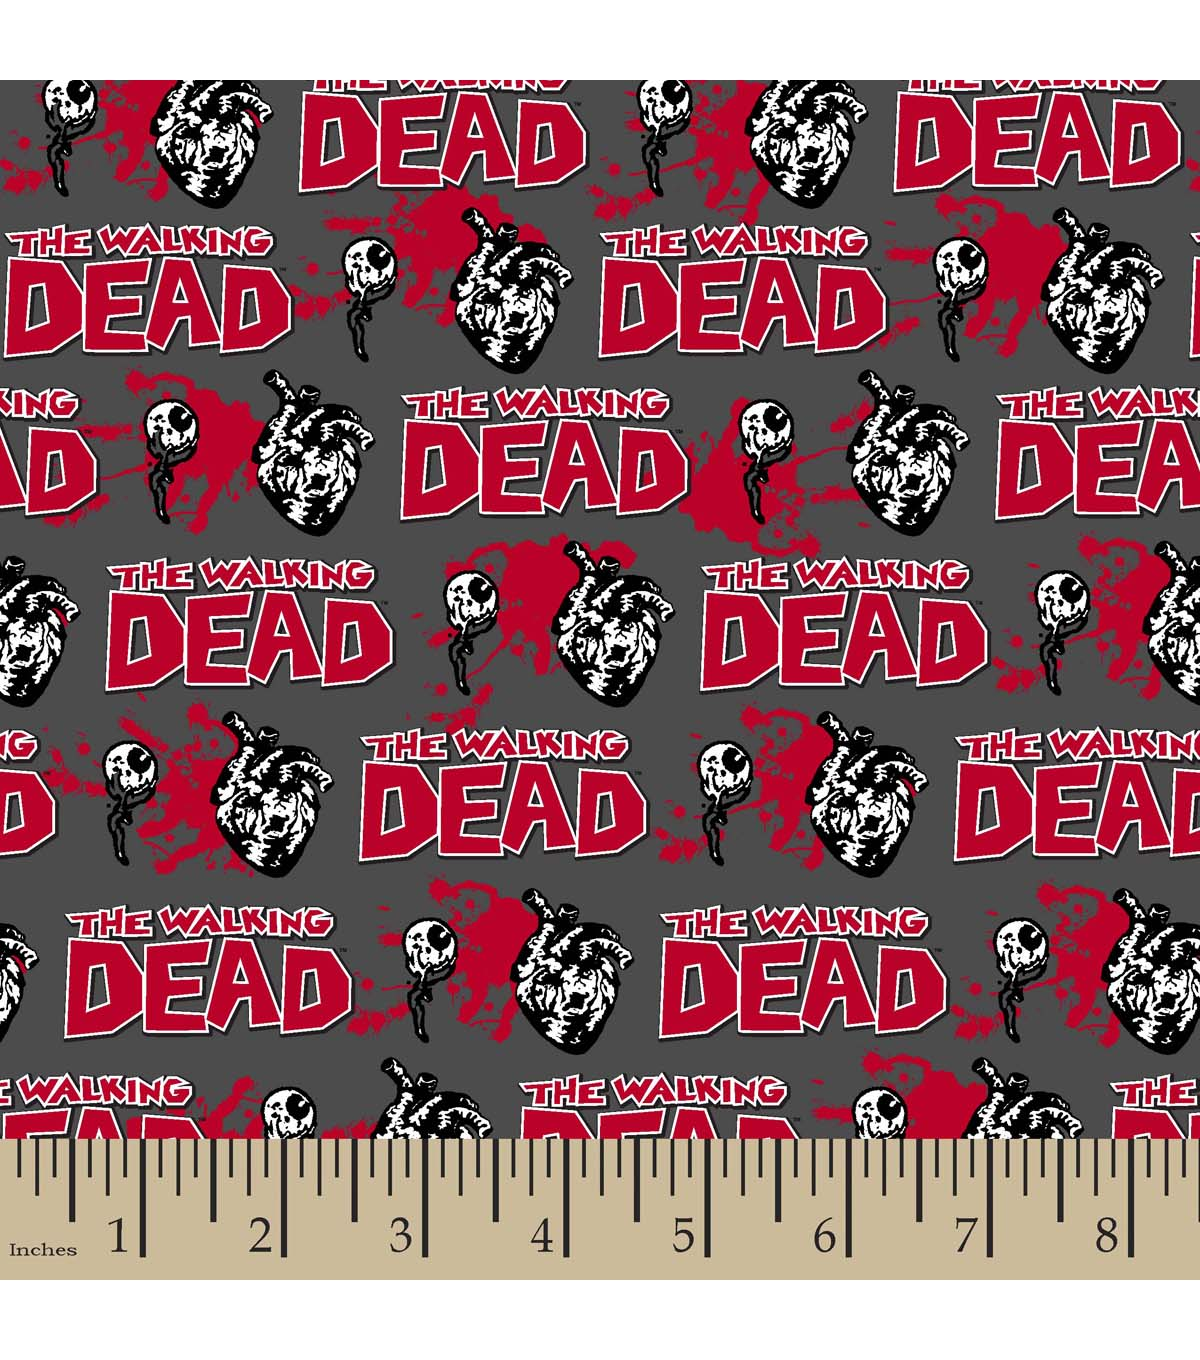 Walking Dead Glow In The Dark Editorial Cotton